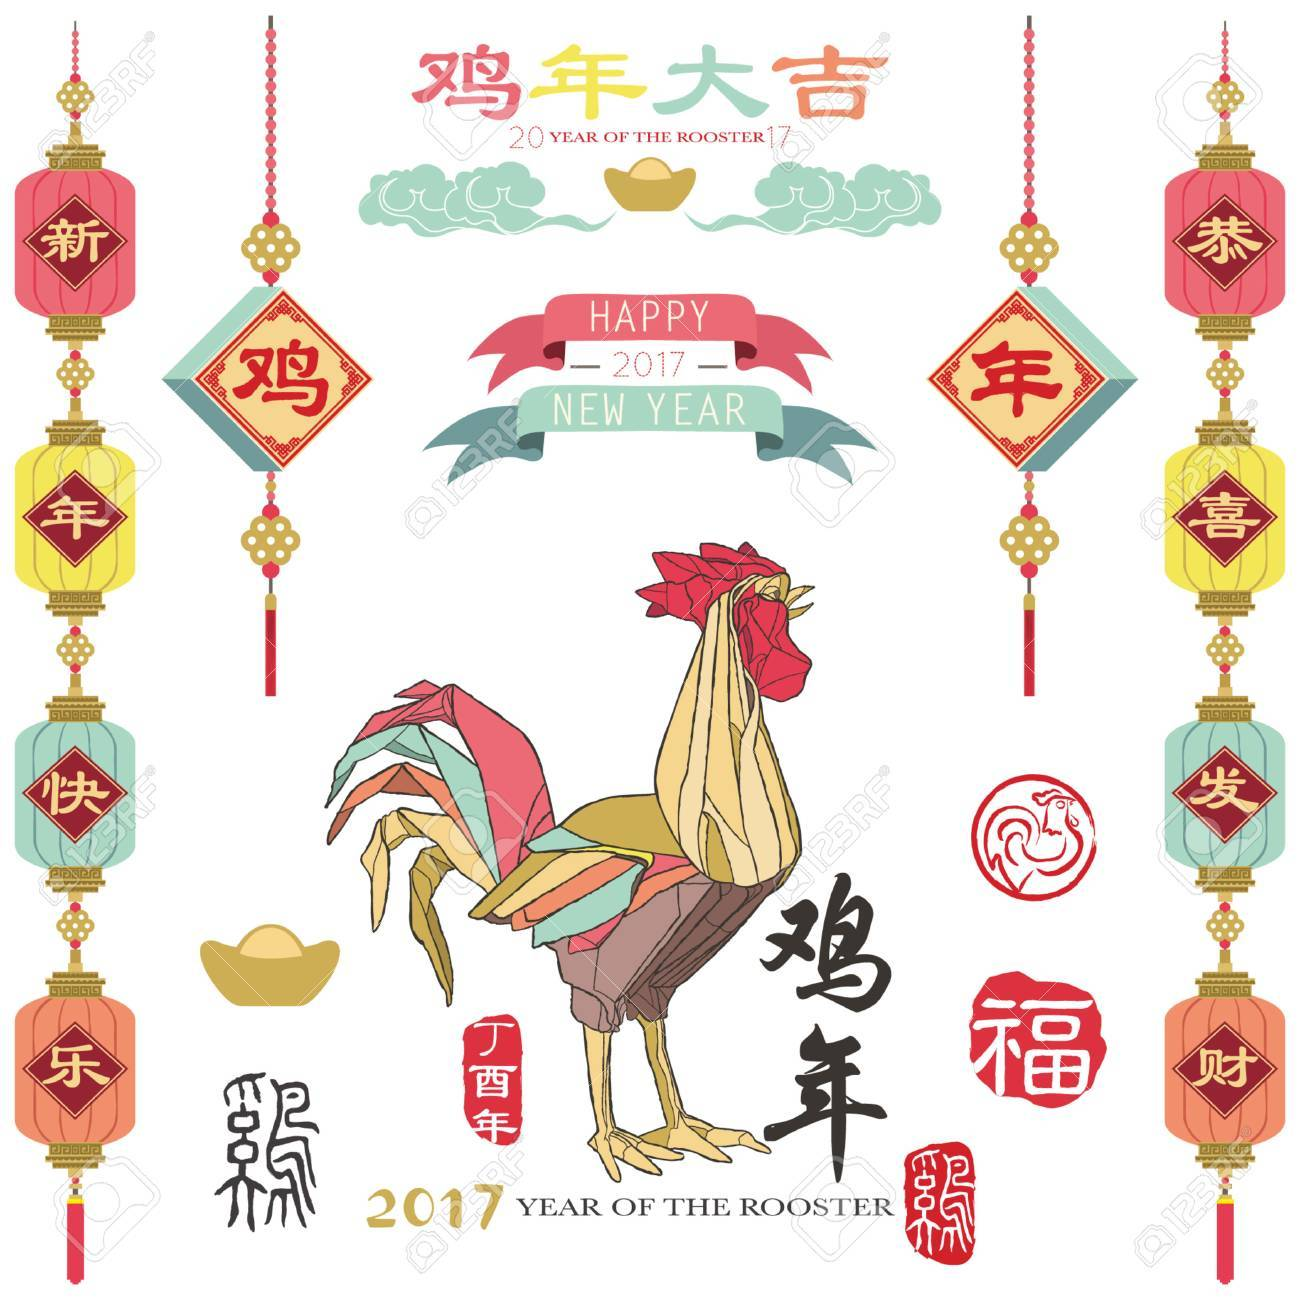 vector year of the rooster 2017 greeting card calligraphy translation happy chinese new year gong xi fa cai blessing and rooster year